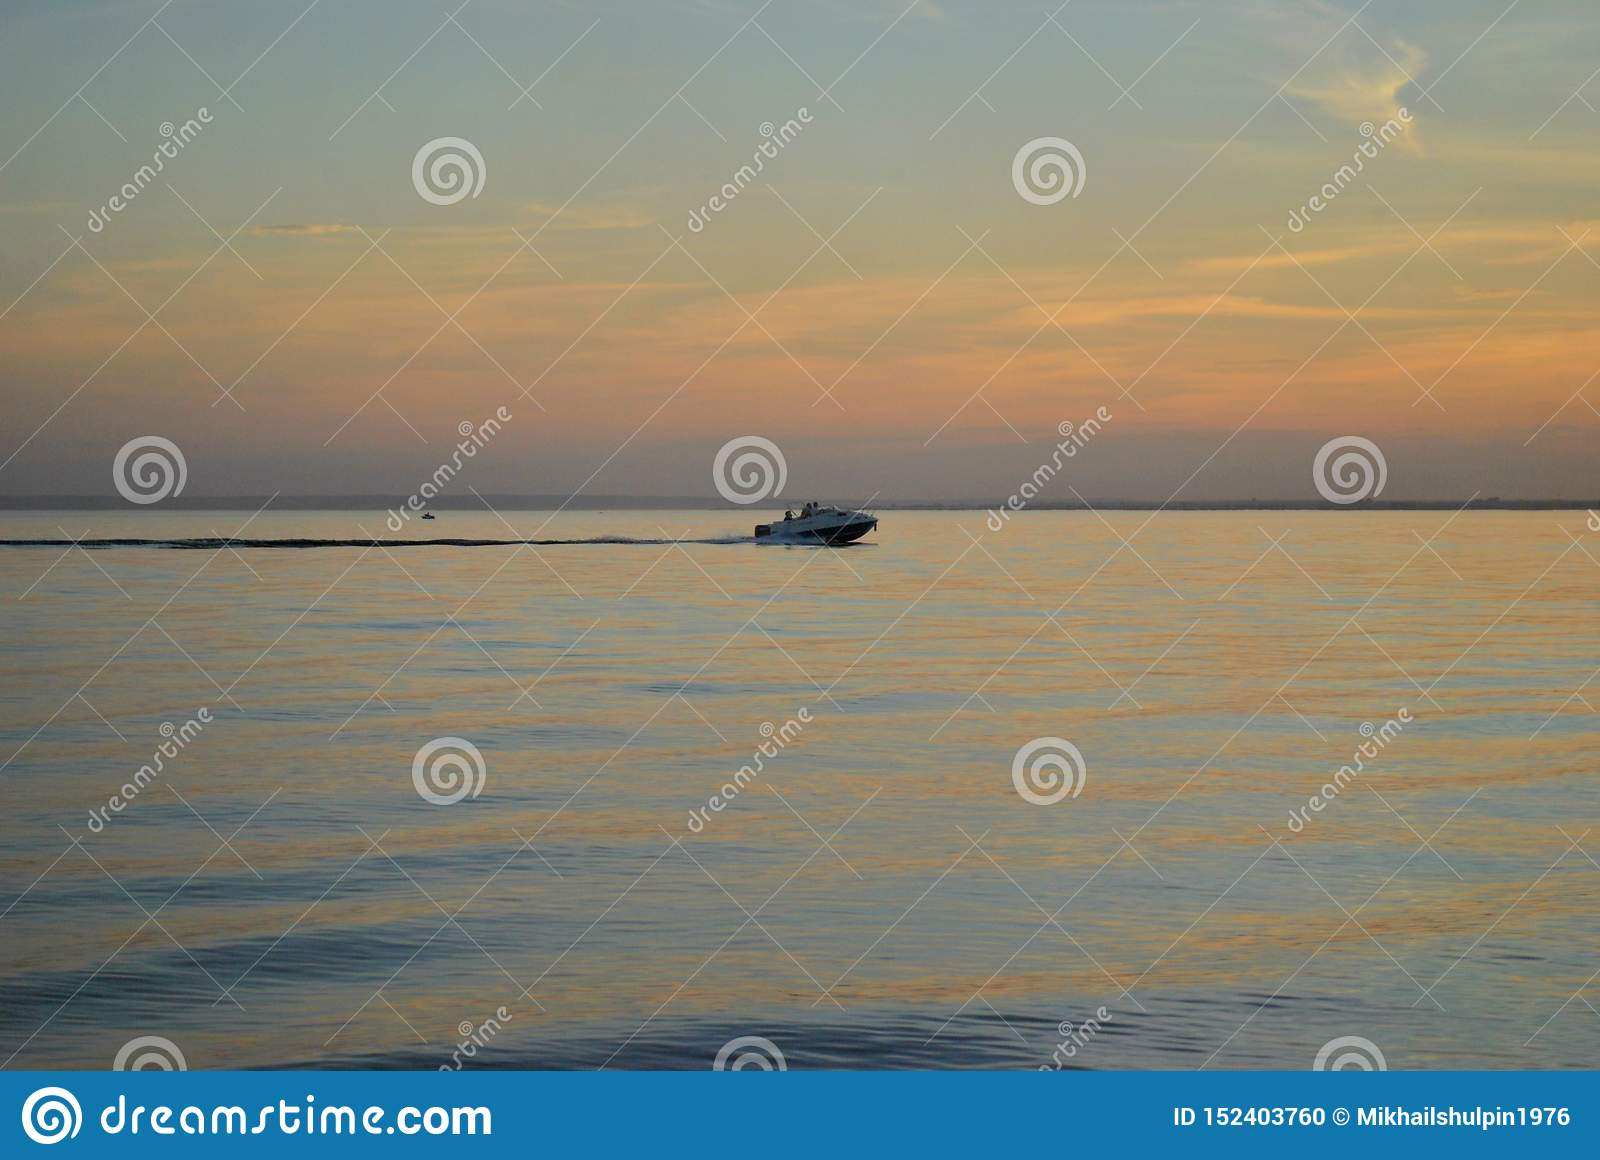 View of the boat floating on the surface of the Volga River against the sunset sky.